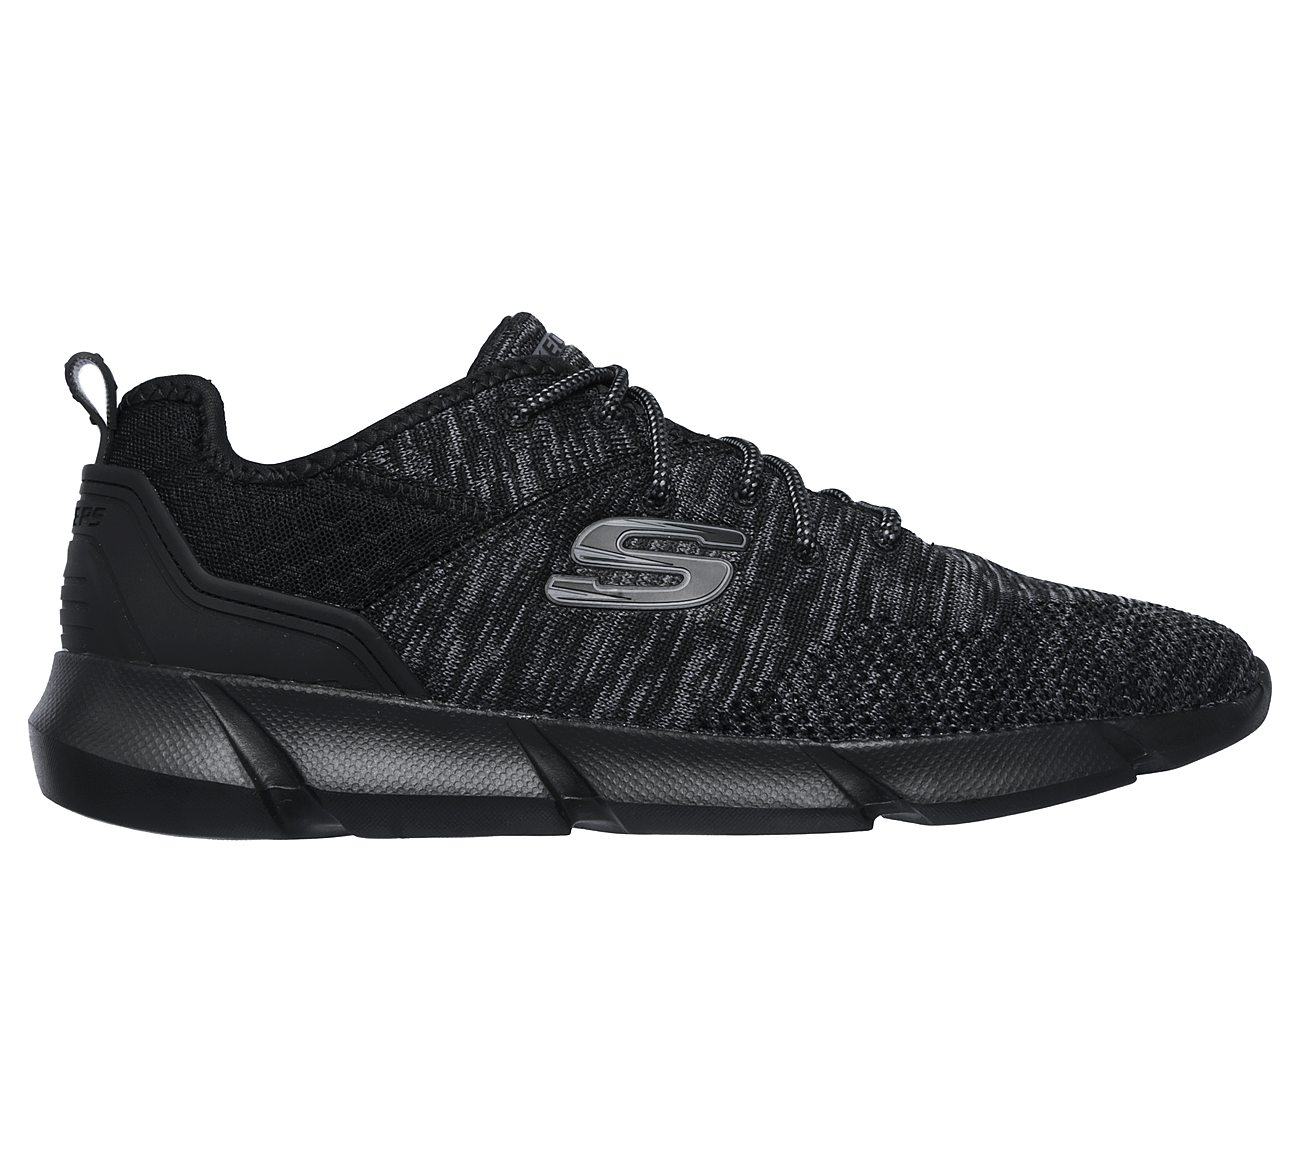 Skechers Alisos Sneaker Men's Men's Shoes | DSW